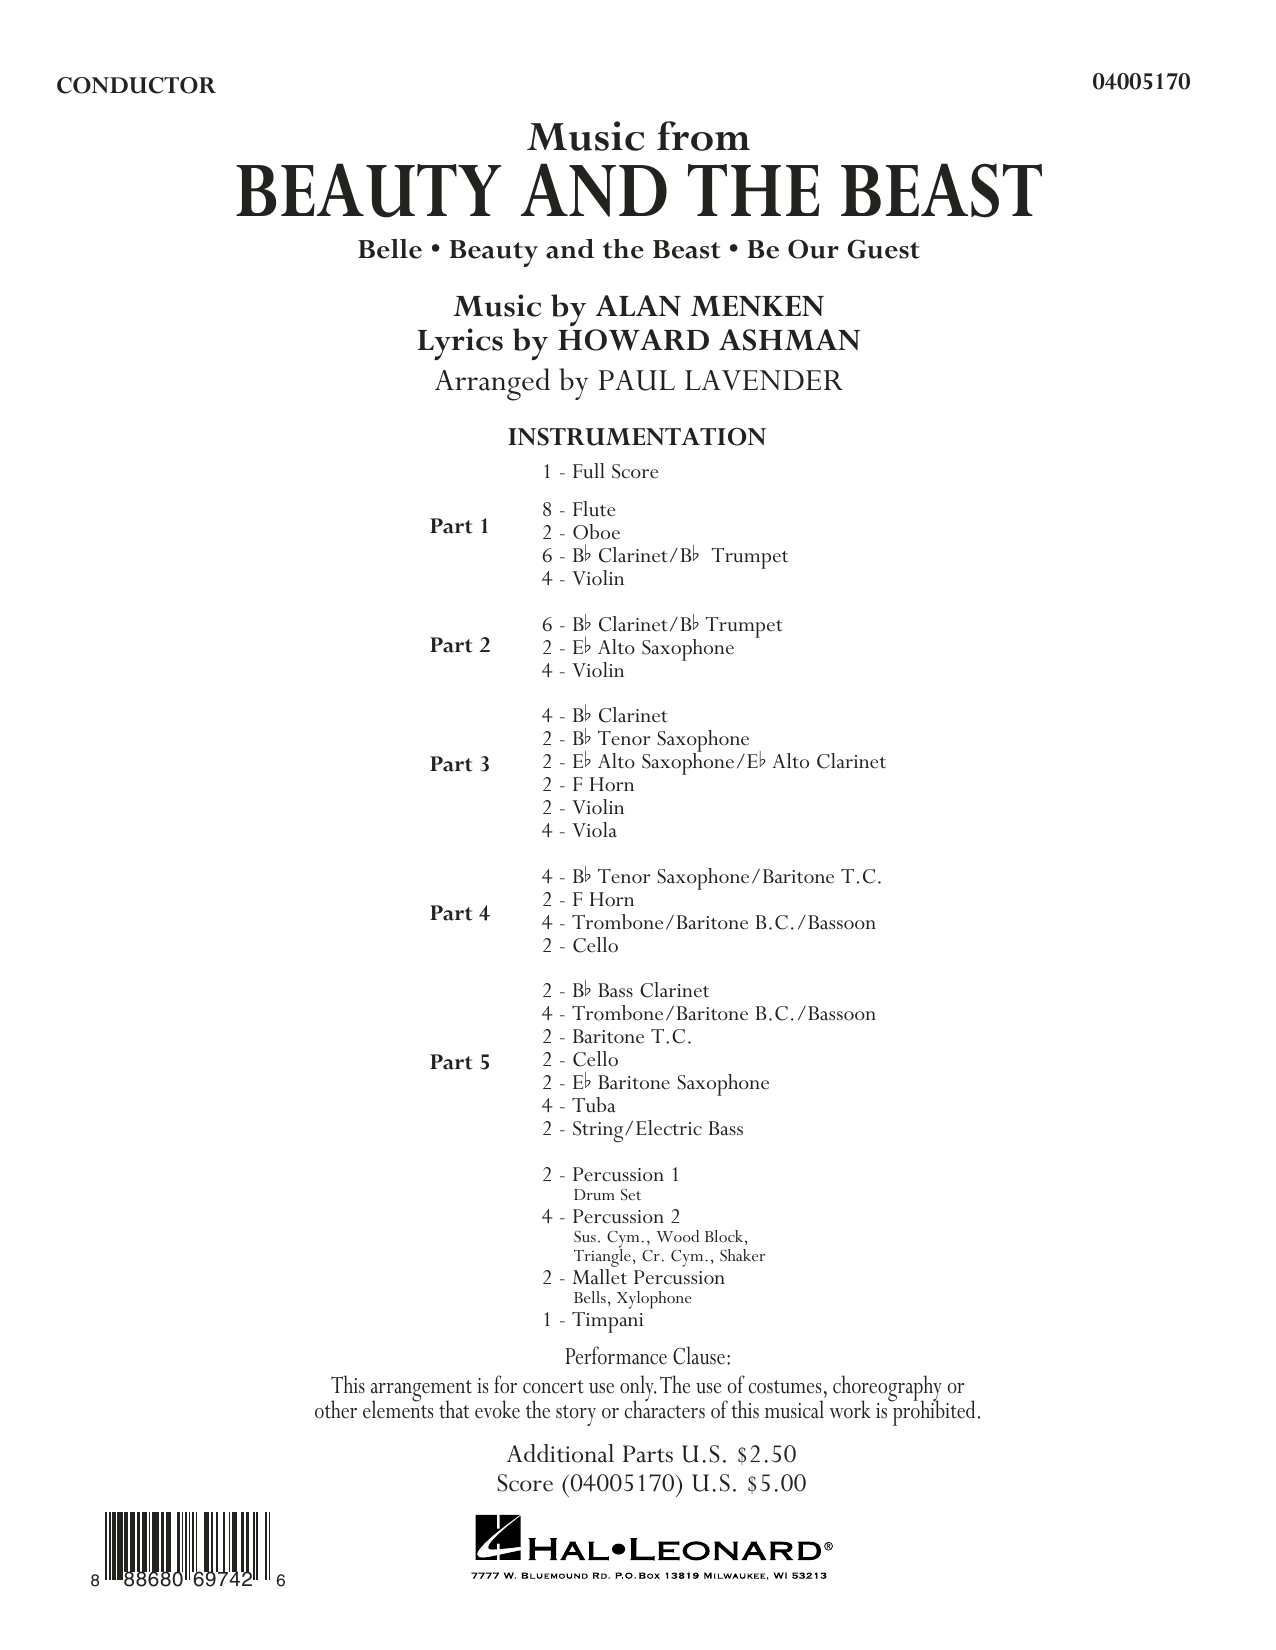 Paul Lavender Music from Beauty and the Beast - Conductor Score (Full Score) sheet music notes and chords. Download Printable PDF.